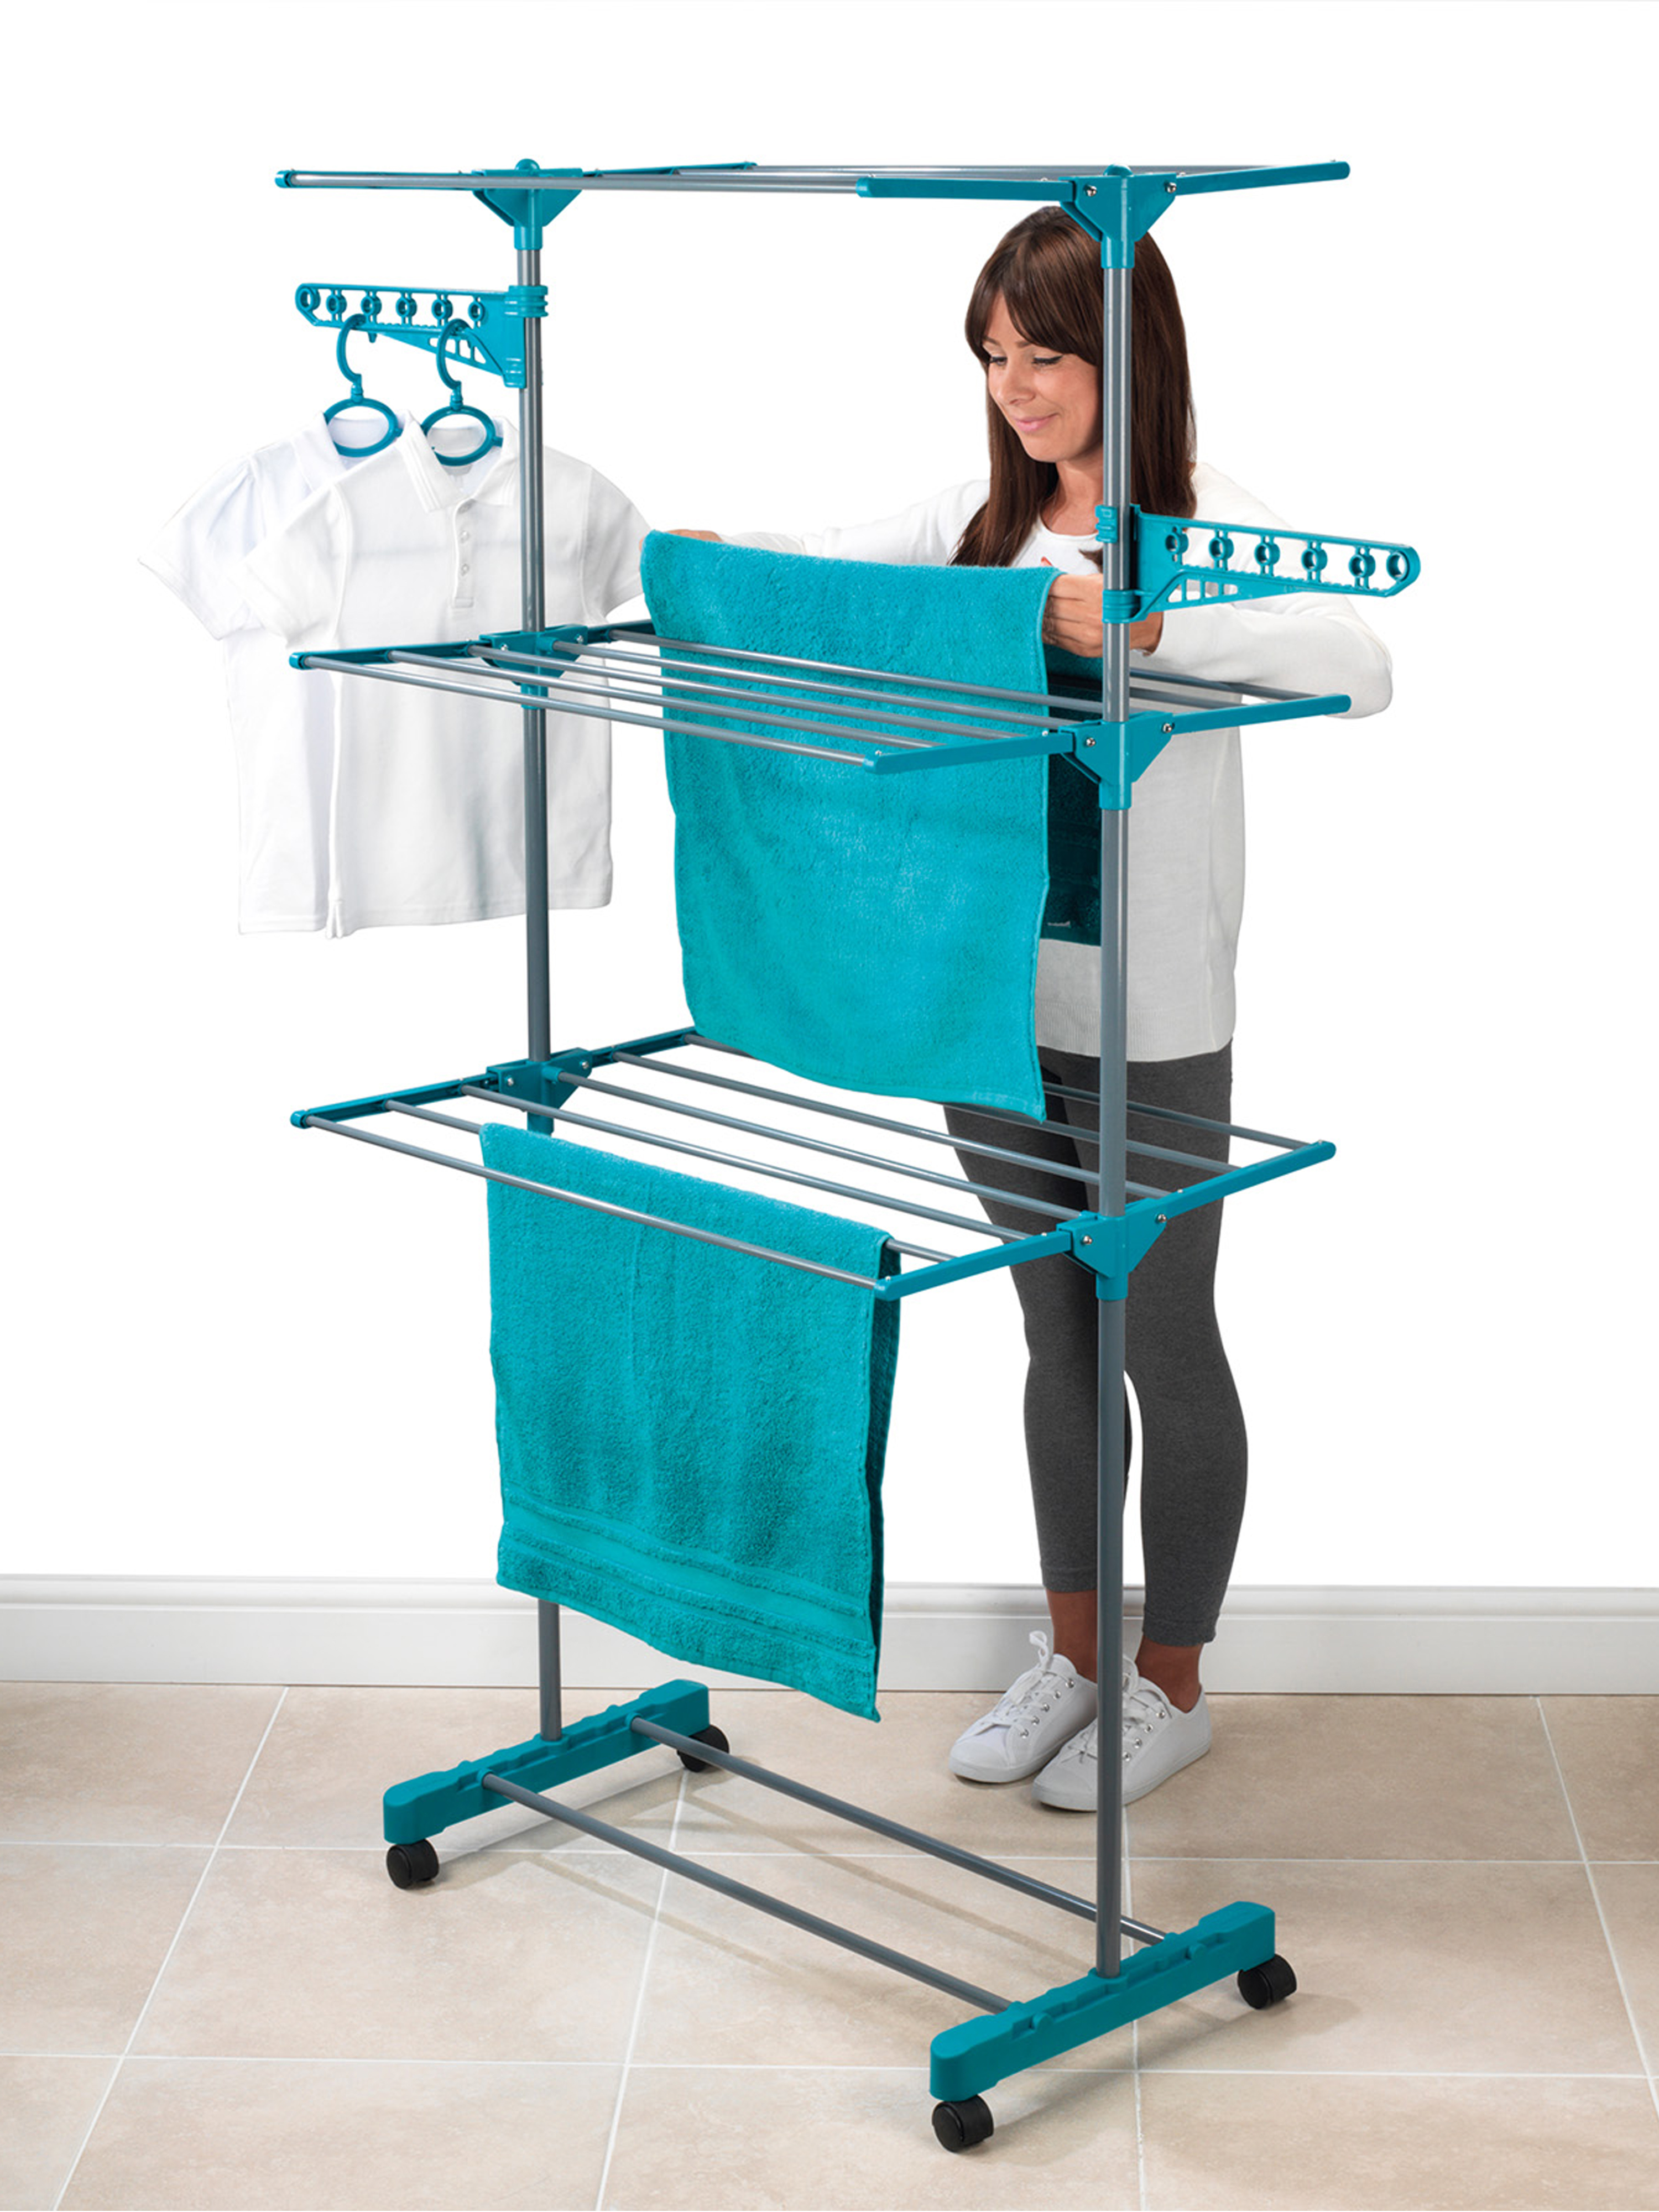 Beldray 3-Tier Deluxe Clothes Airer and Laundry Basket Set | Beldray